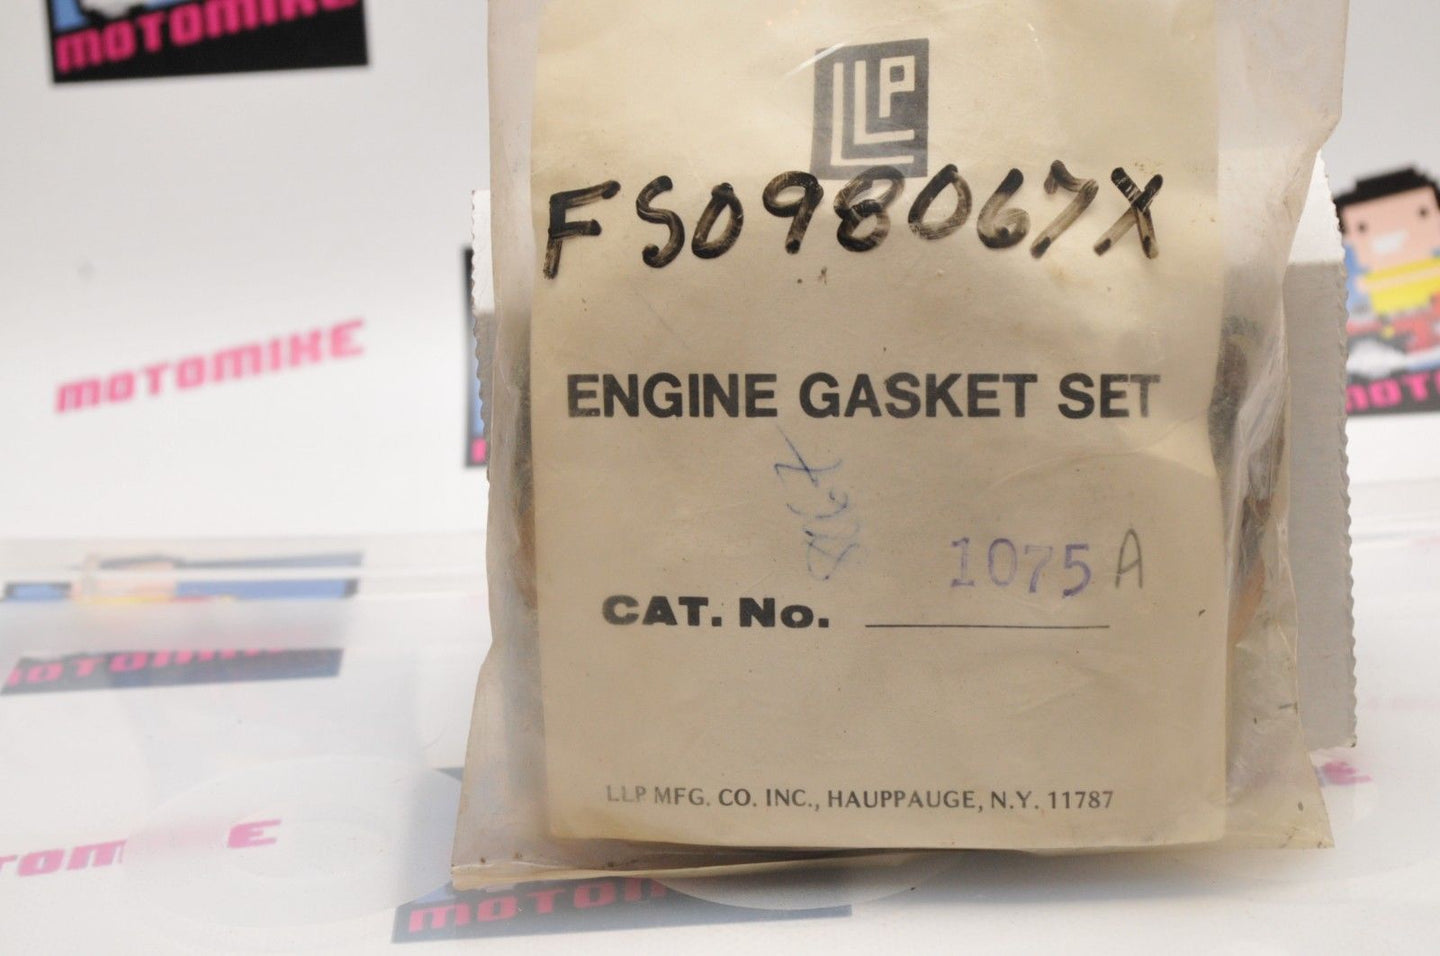 NEW NOS FULL GASKET SET LLP 1075A // 8067X